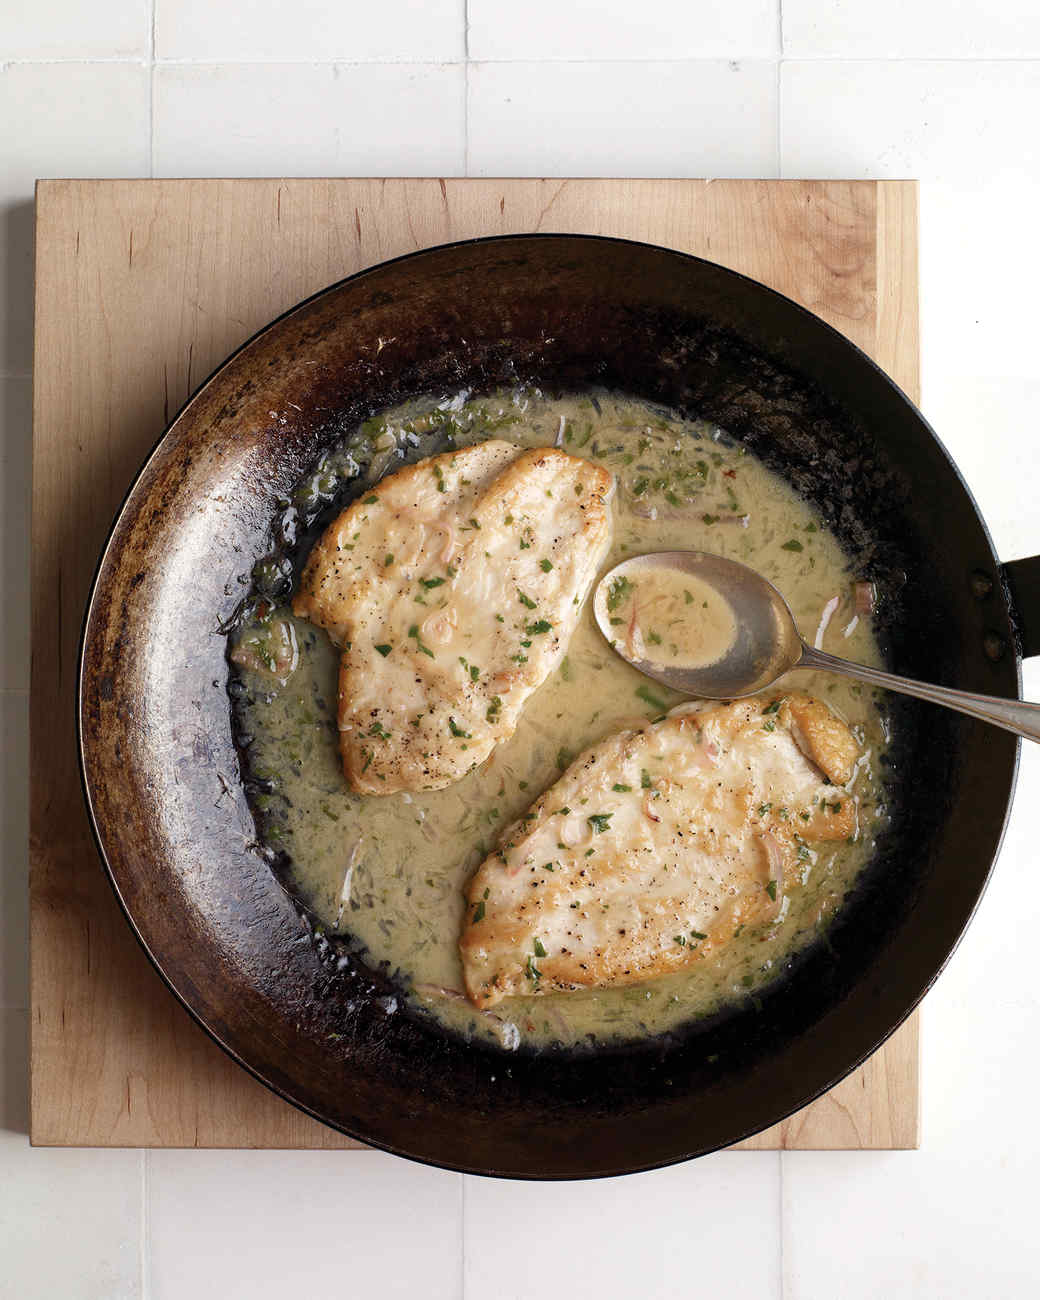 mld105416_0110_chicken_pan.jpg